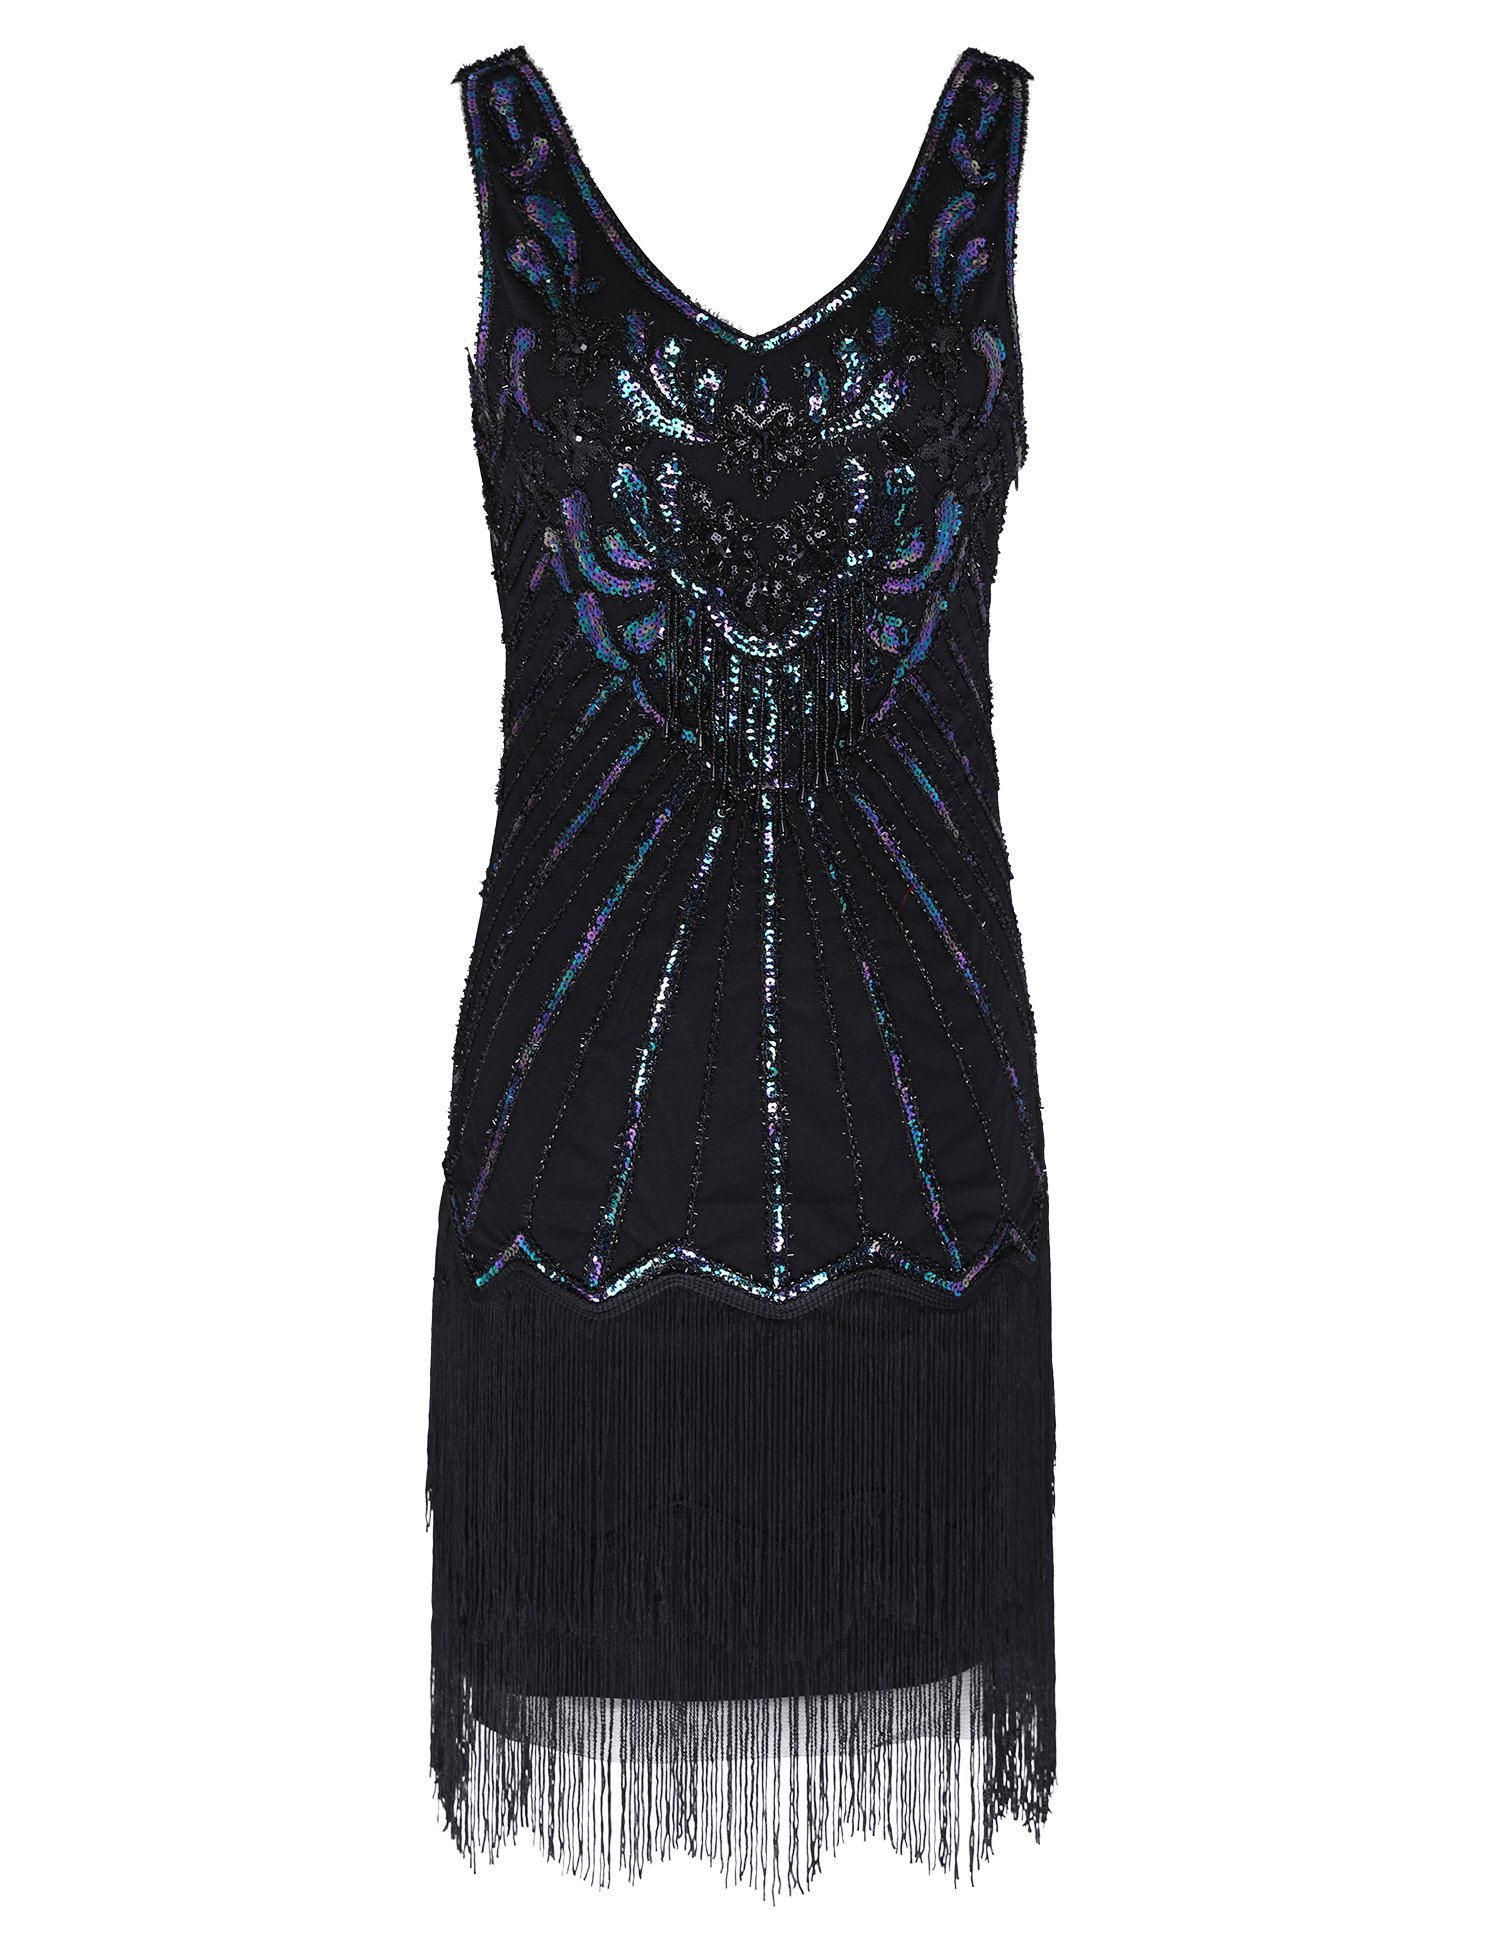 Women's Flapper Dress 1920s V Neck Beaded Fringed Great Gatsby Dress (Black, L)